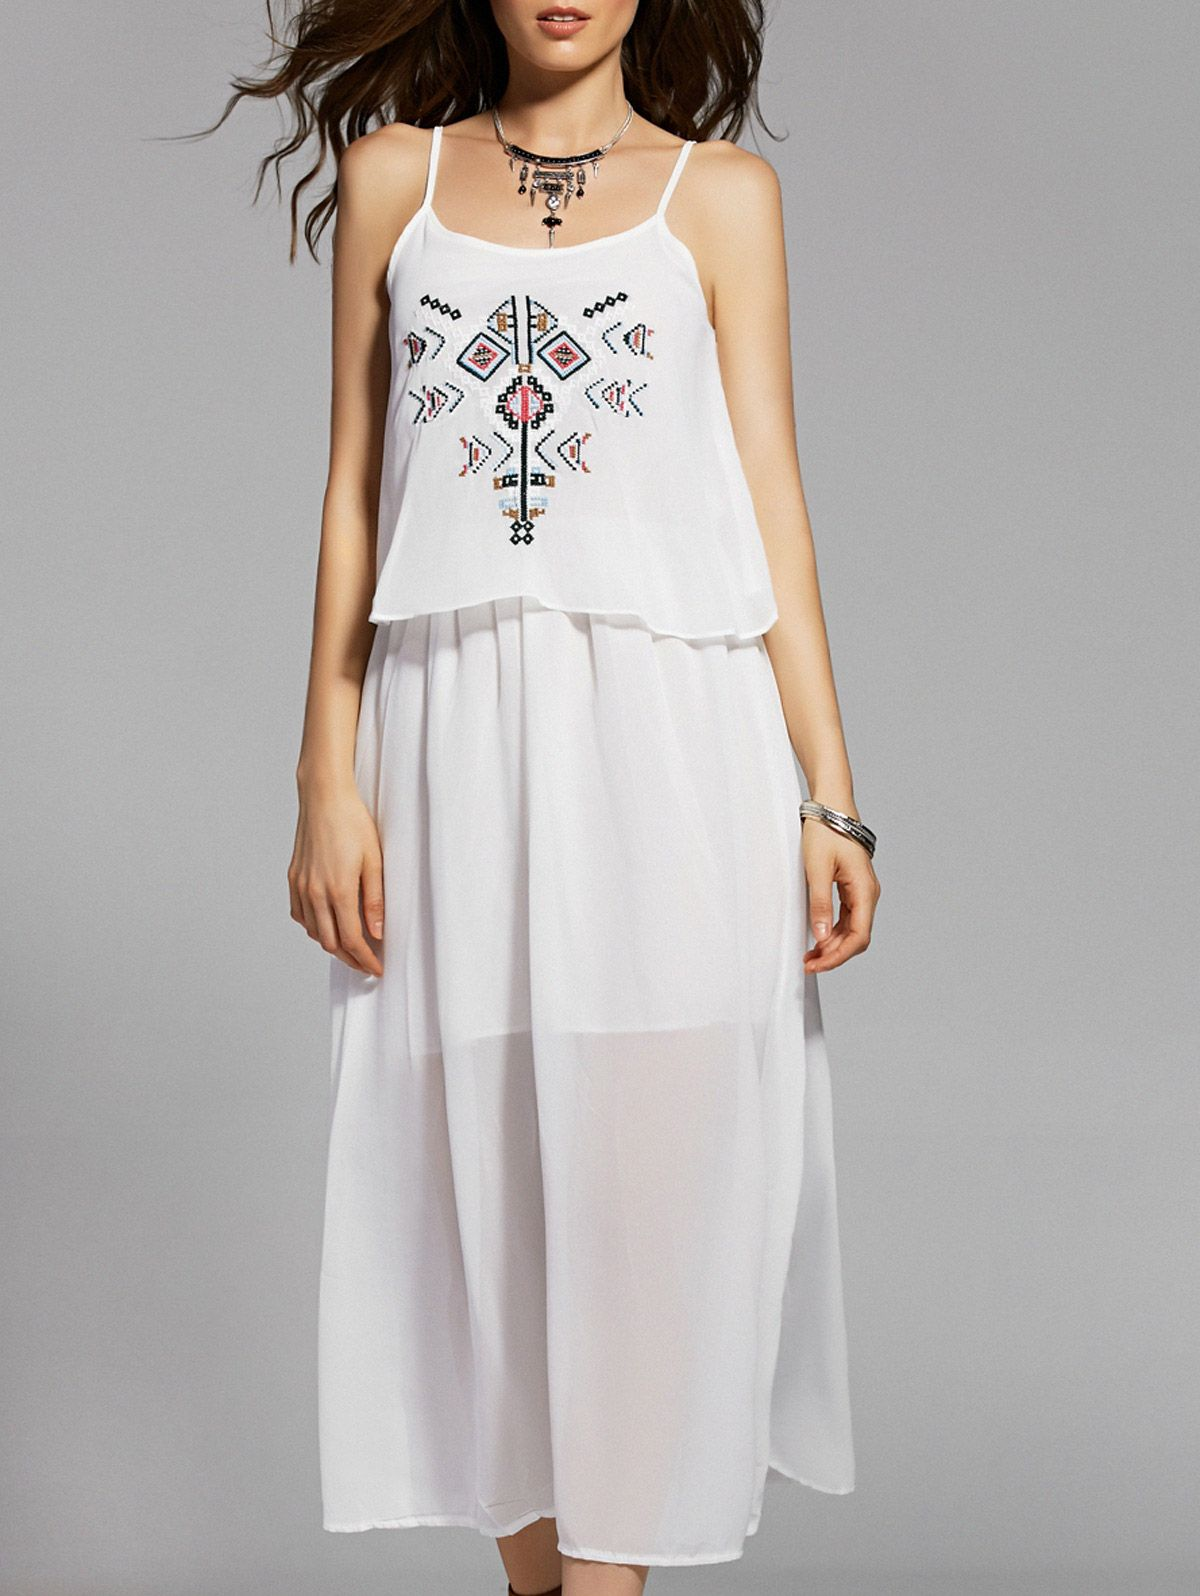 Ethnic Embroidery Cami White Maxi Dress #women, #men, #hats, #watches, #belts, #fashion, #style